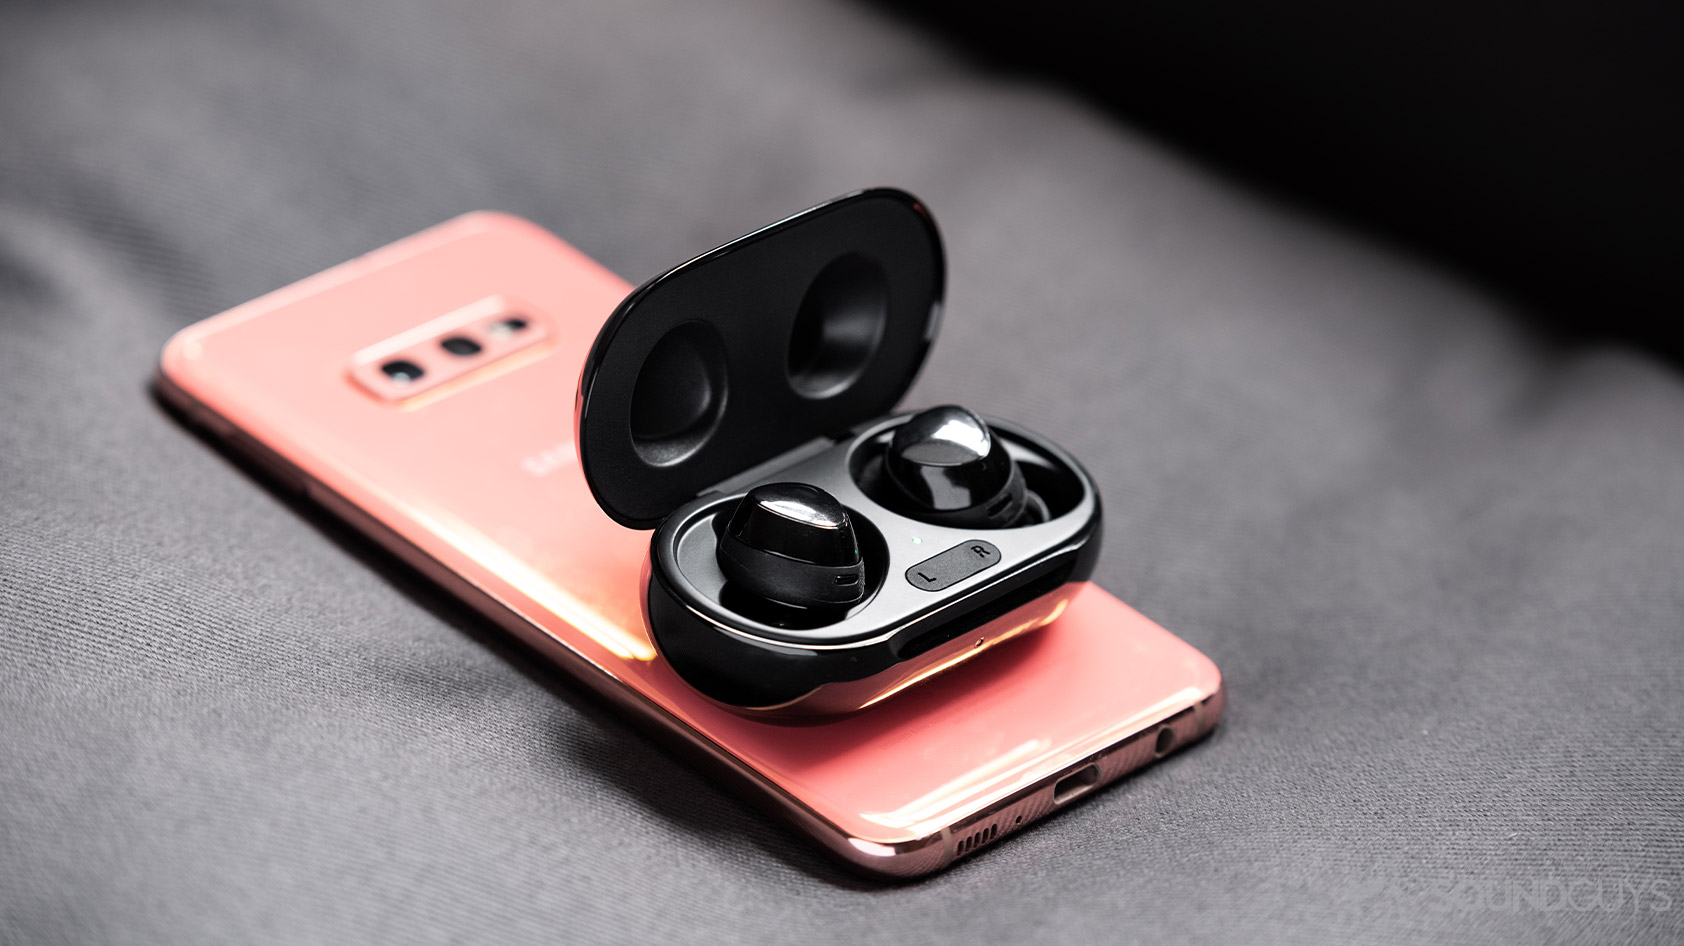 Top 7 phone supplies and accessories that your phone needs today!